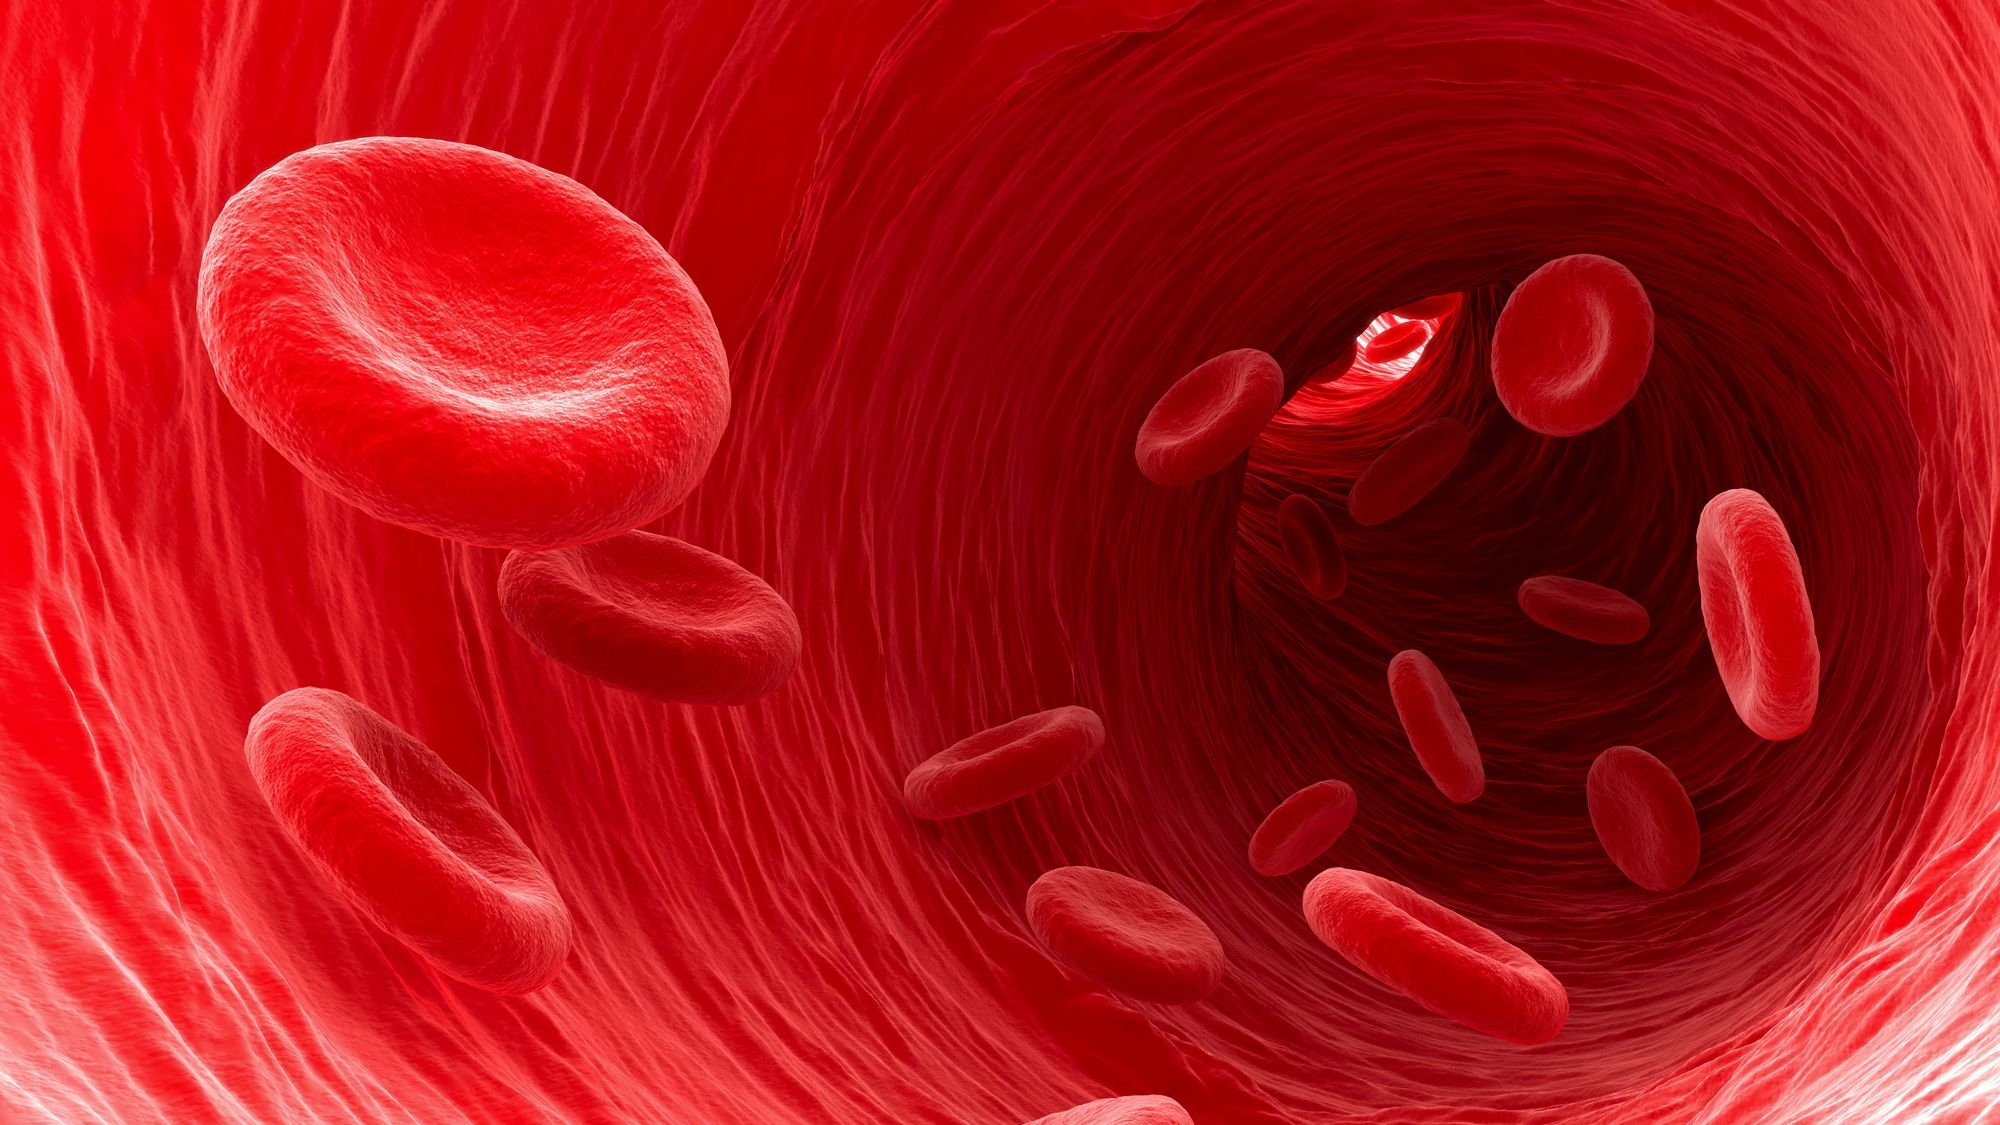 Blood Cells May Hold Key to 'Fountain of Youth', Say Scientists